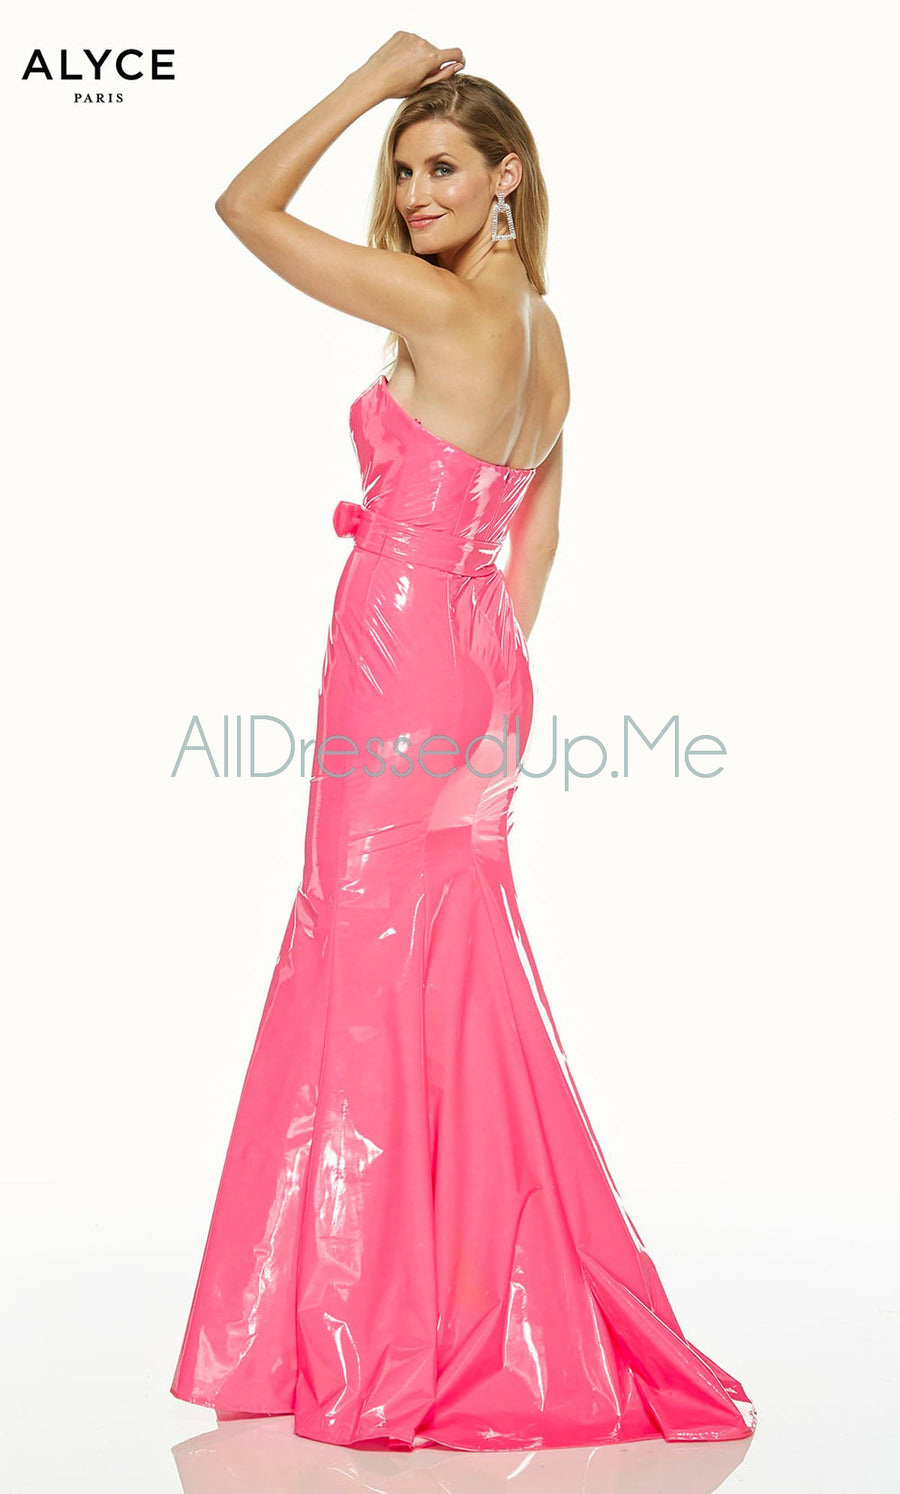 Alyce Paris - 60855 - All Dressed Up, Prom/Party Dress - - Dresses Two Piece Cut Out Sweetheart Halter Low Back High Neck Print Beaded Chiffon Jersey Fitted Sexy Satin Lace Jeweled Sparkle Shimmer Sleeveless Stunning Gorgeous Modest See Through Transparent Glitter Special Occasions Event Chattanooga Hixson Shops Boutiques Tennessee TN Georgia GA MSRP Lowest Prices Sale Discount